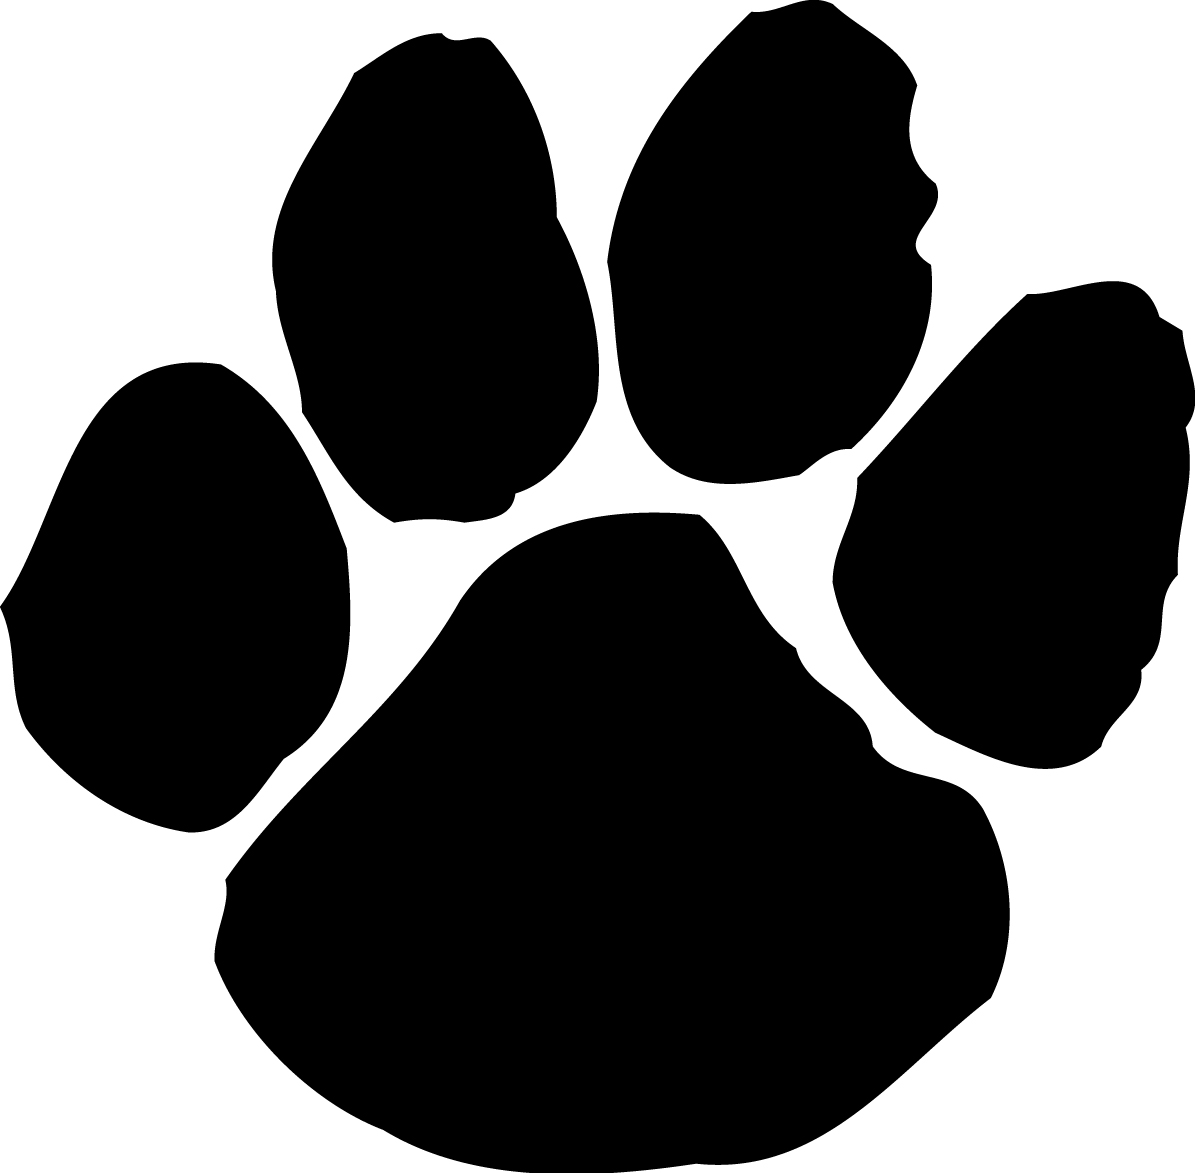 Paw print wildcats on dog paws dog paw tattoos and clip art image 6